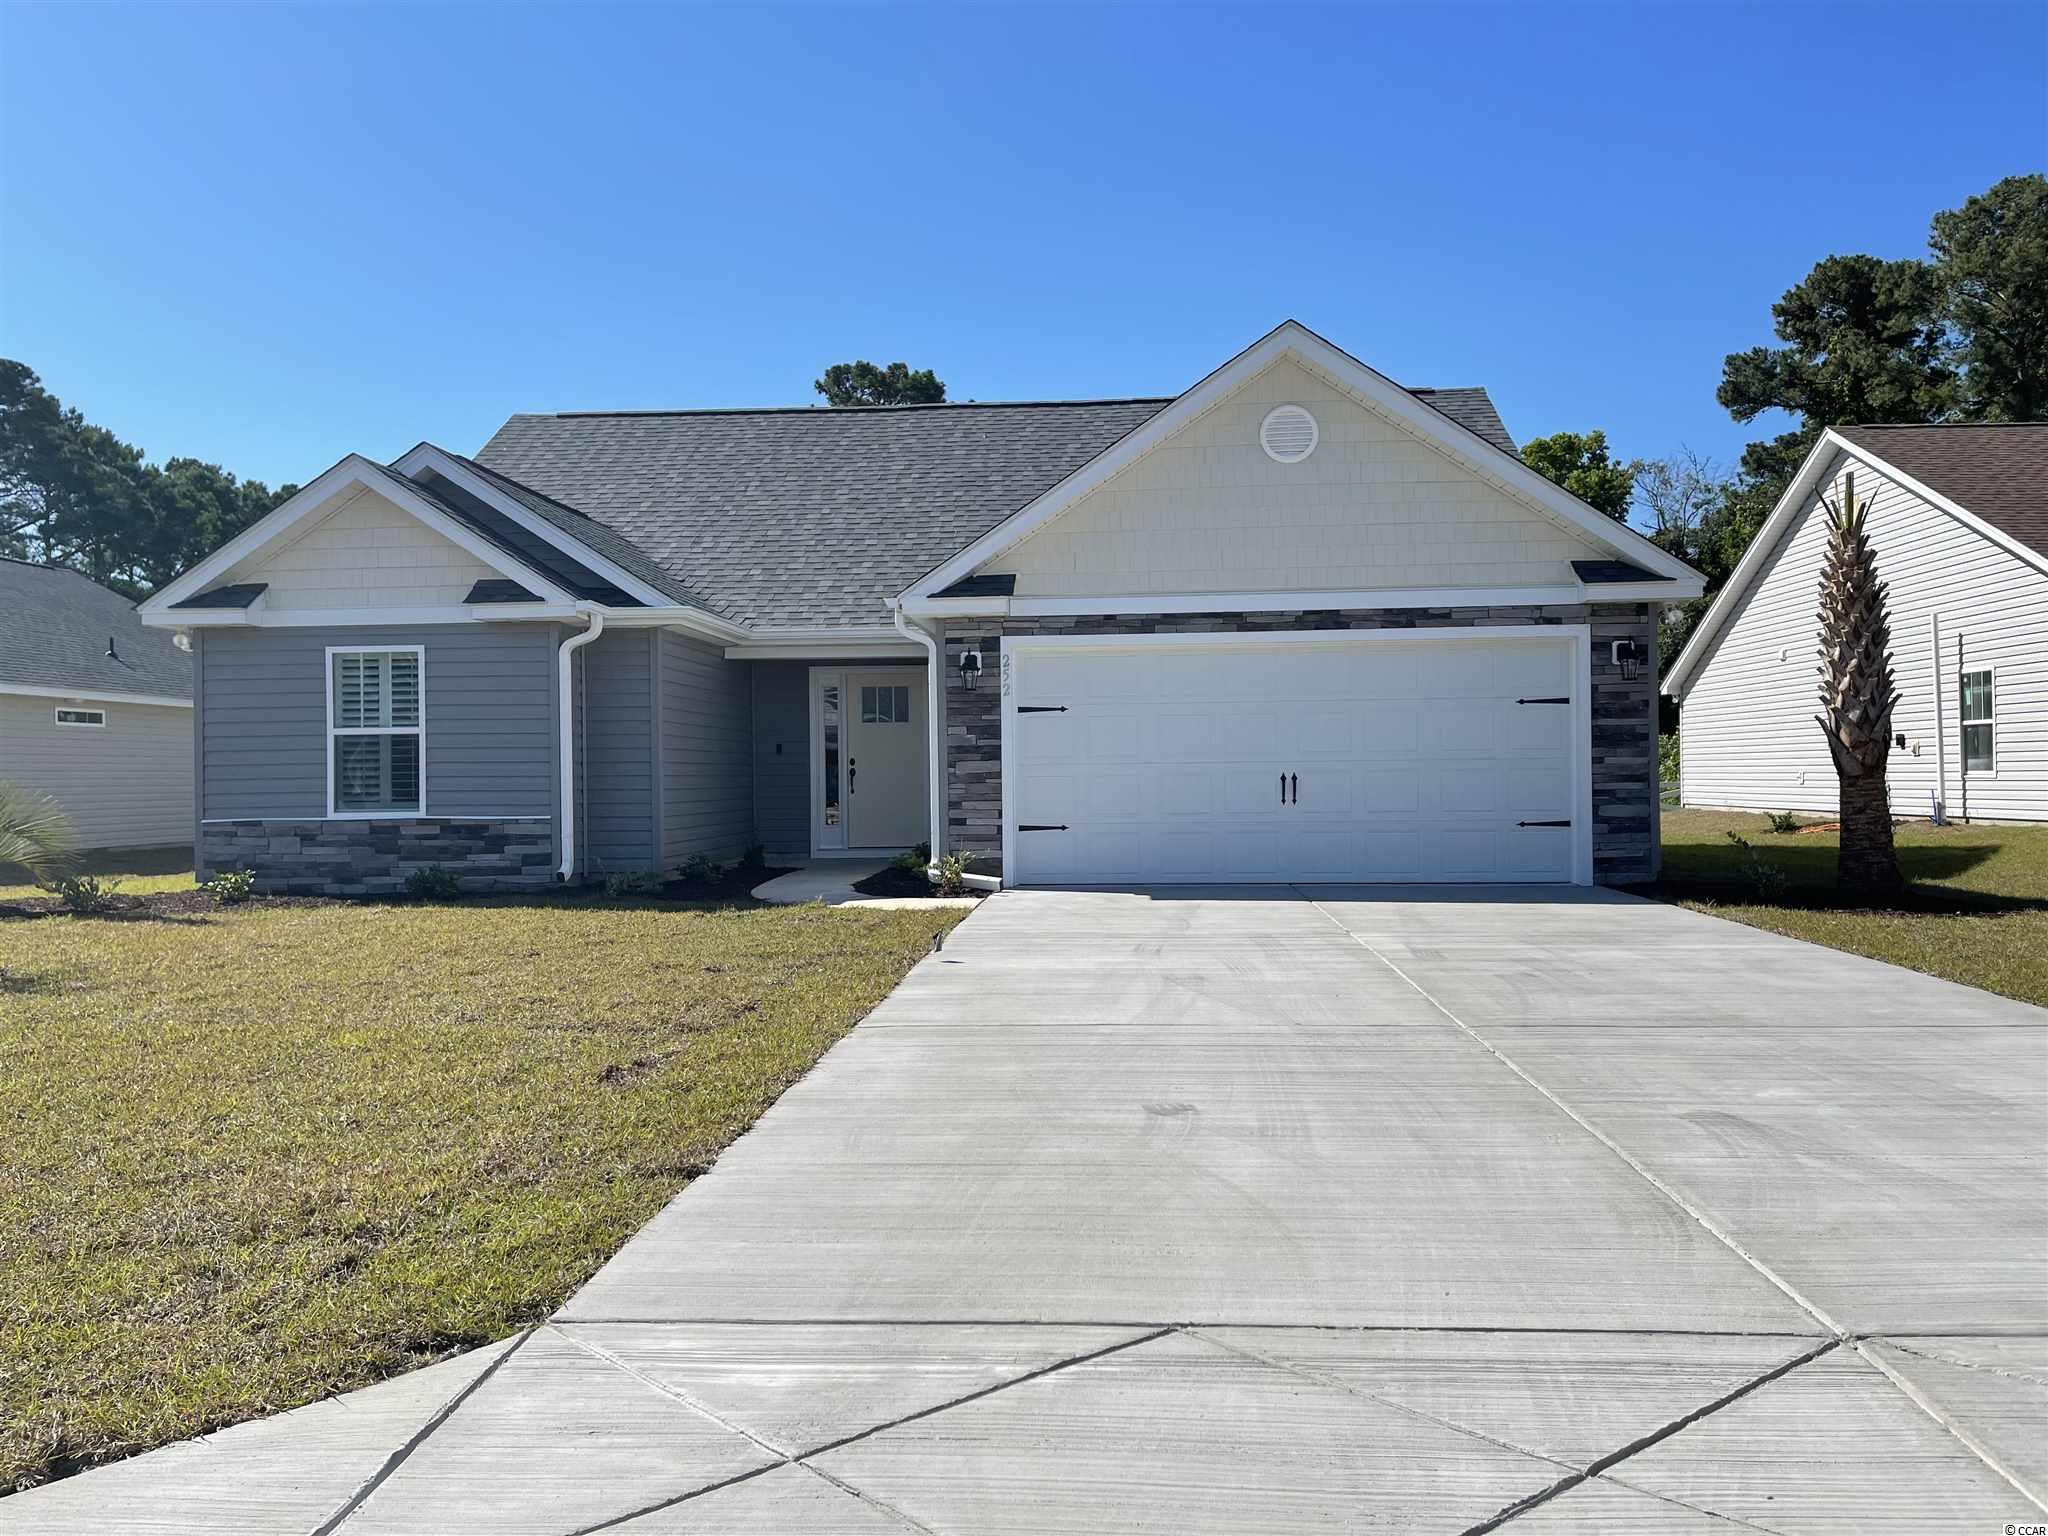 """Natural Gas quiet community located in Little River/North Myrtle Beach only a few miles from the Beach and major shopping! This is the Opal floor plan. Open floor plan on a 0.20 ac home site featuring 3 bedrooms, 2 baths. This home has a 2 ft expansion through center. It includes a finished 2 car garage with laundry room moved inside. Ceramic tile in all bathrooms and Laundry room, LVP flooring in Family Room, Foyer, Hall. Granite Kitchen Countertops, crown molding on kitchen cabinets with hardware included. Vaulted ceiling in Family room and every bedroom. Wainscot and 5 1/2 """" beaded baseboards for Custom look!! Home also includes TAEXX pest control tubing, lawn irrigation and Ring video doorbell!!! Stone accents on the exterior as well. All measurements are approximate *Photos of a similar home* Some items on the photos may be an additional cost. Anticipating completion time March-April 2021"""